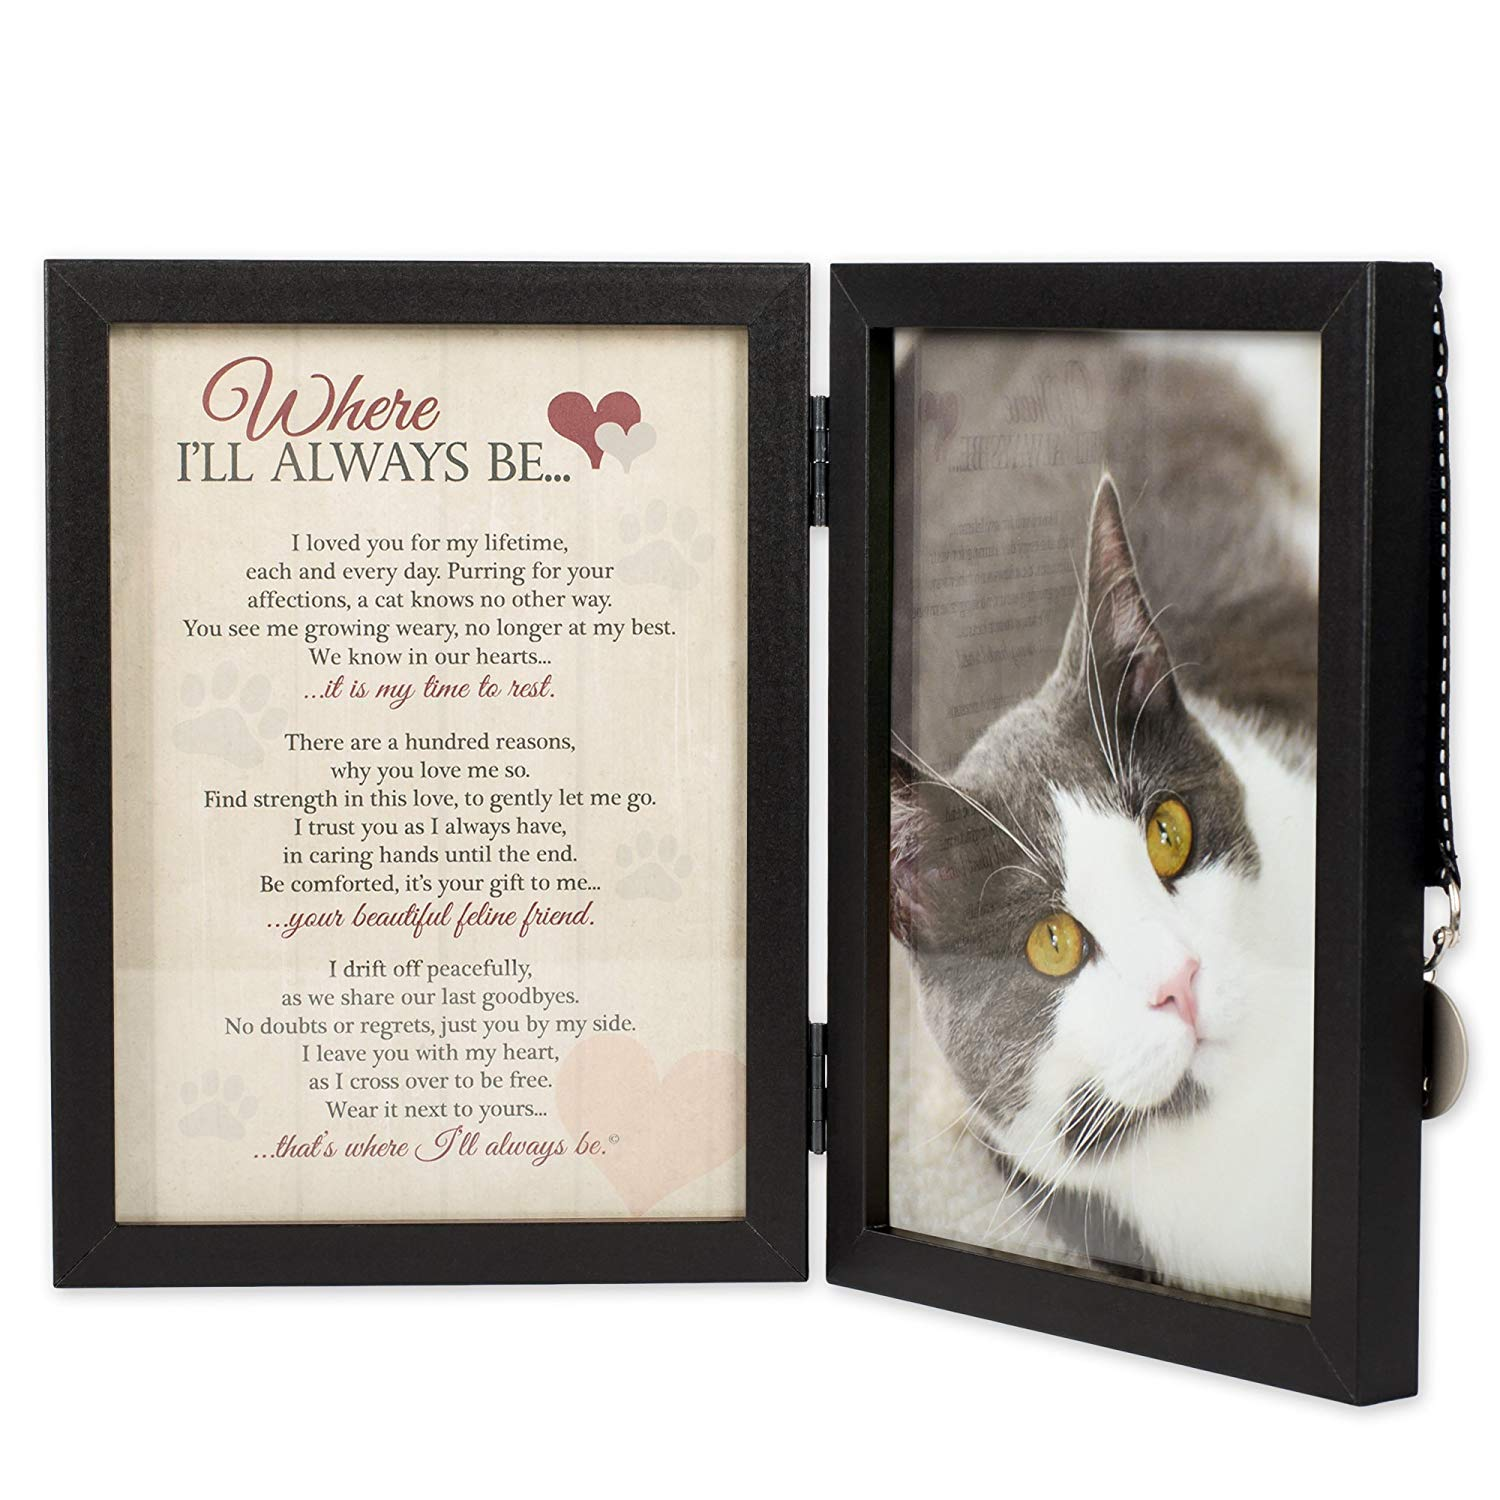 Where I'll Always Be Cat Memorial Photo Frame - Thoughtful Pet Memorial Gift (Frame with Pet Tag) by Pawprints Left by You Memorial Gifts